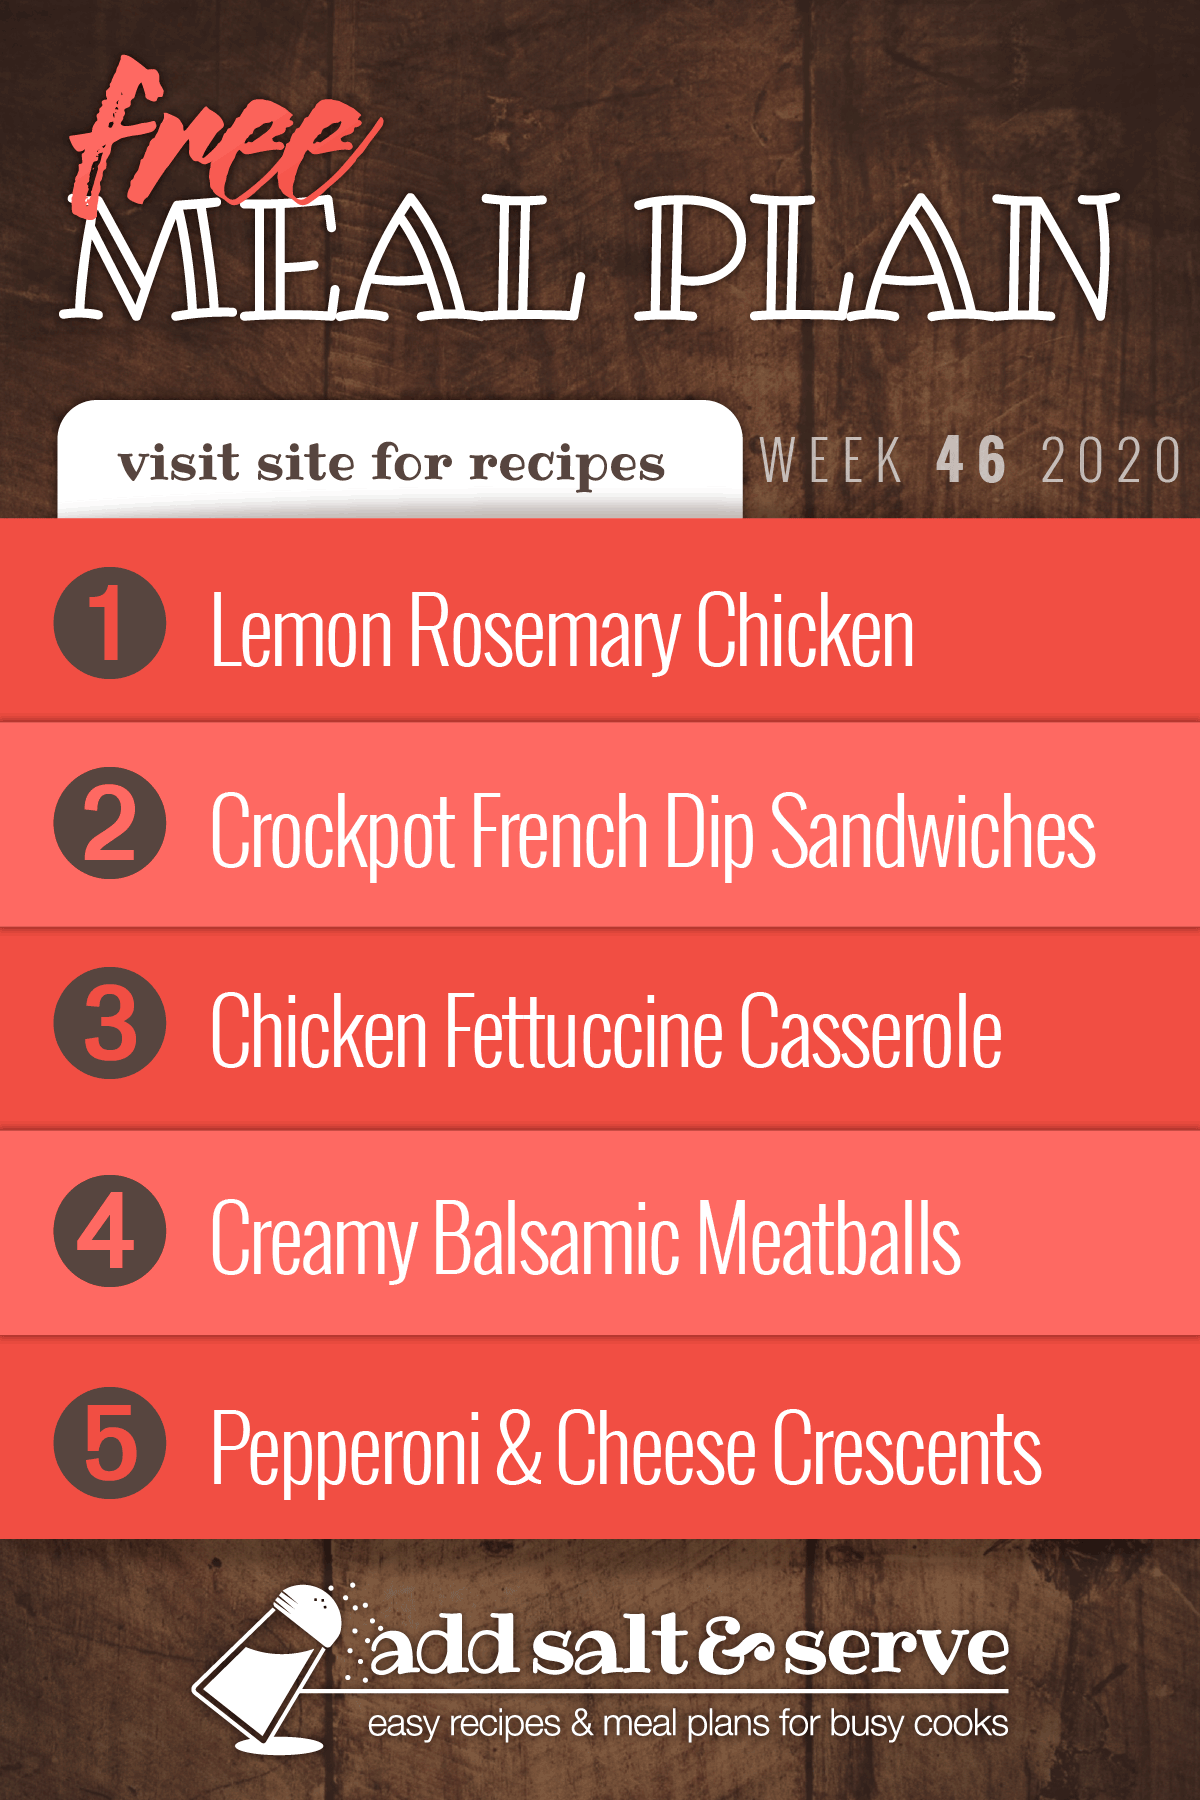 Free Meal Plan for Week 46 2020: Lemon Rosemary Chicken, Crockpot French Dip Sandwiches, Shortcut Chicken Fettuccine Casserole, Creamy Balsamic Meatballs over Egg Noodles, Pepperoni and Cheese Crescents - Visit Add Salt & Serve for recipes